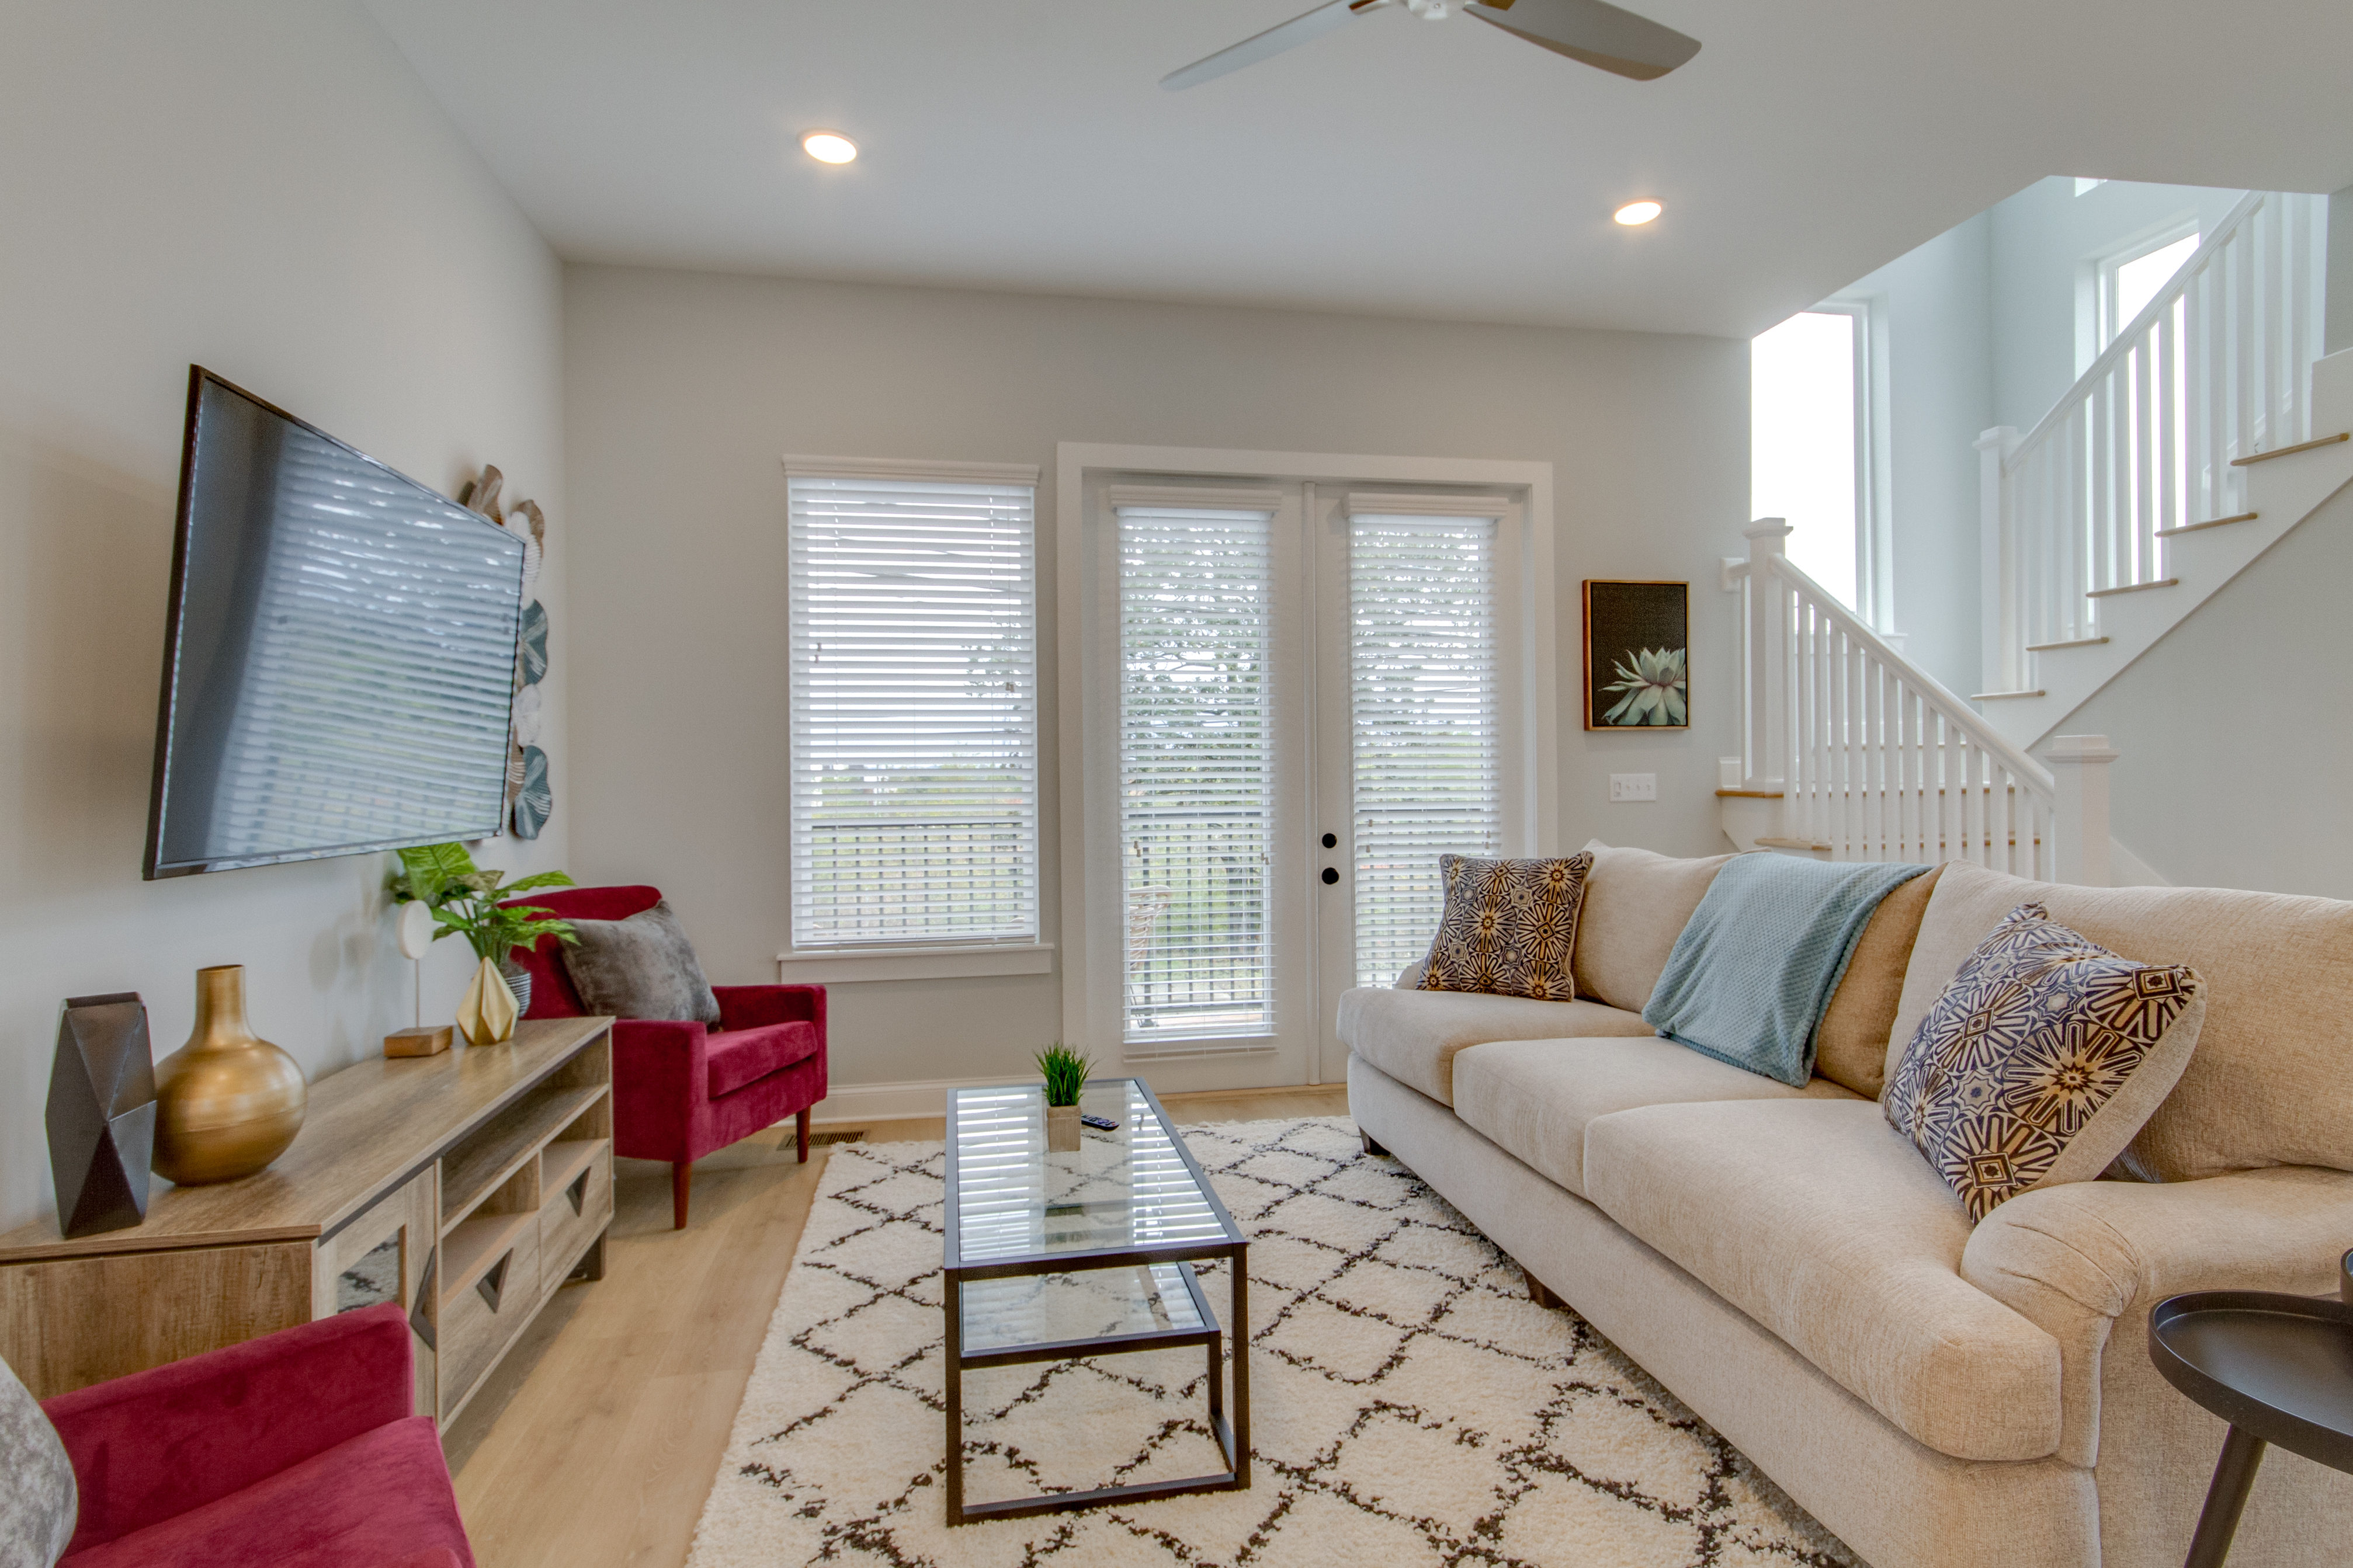 Property Image 1 - Elite Townhome With Swanky & Fun Decor With 9 Comfy Beds